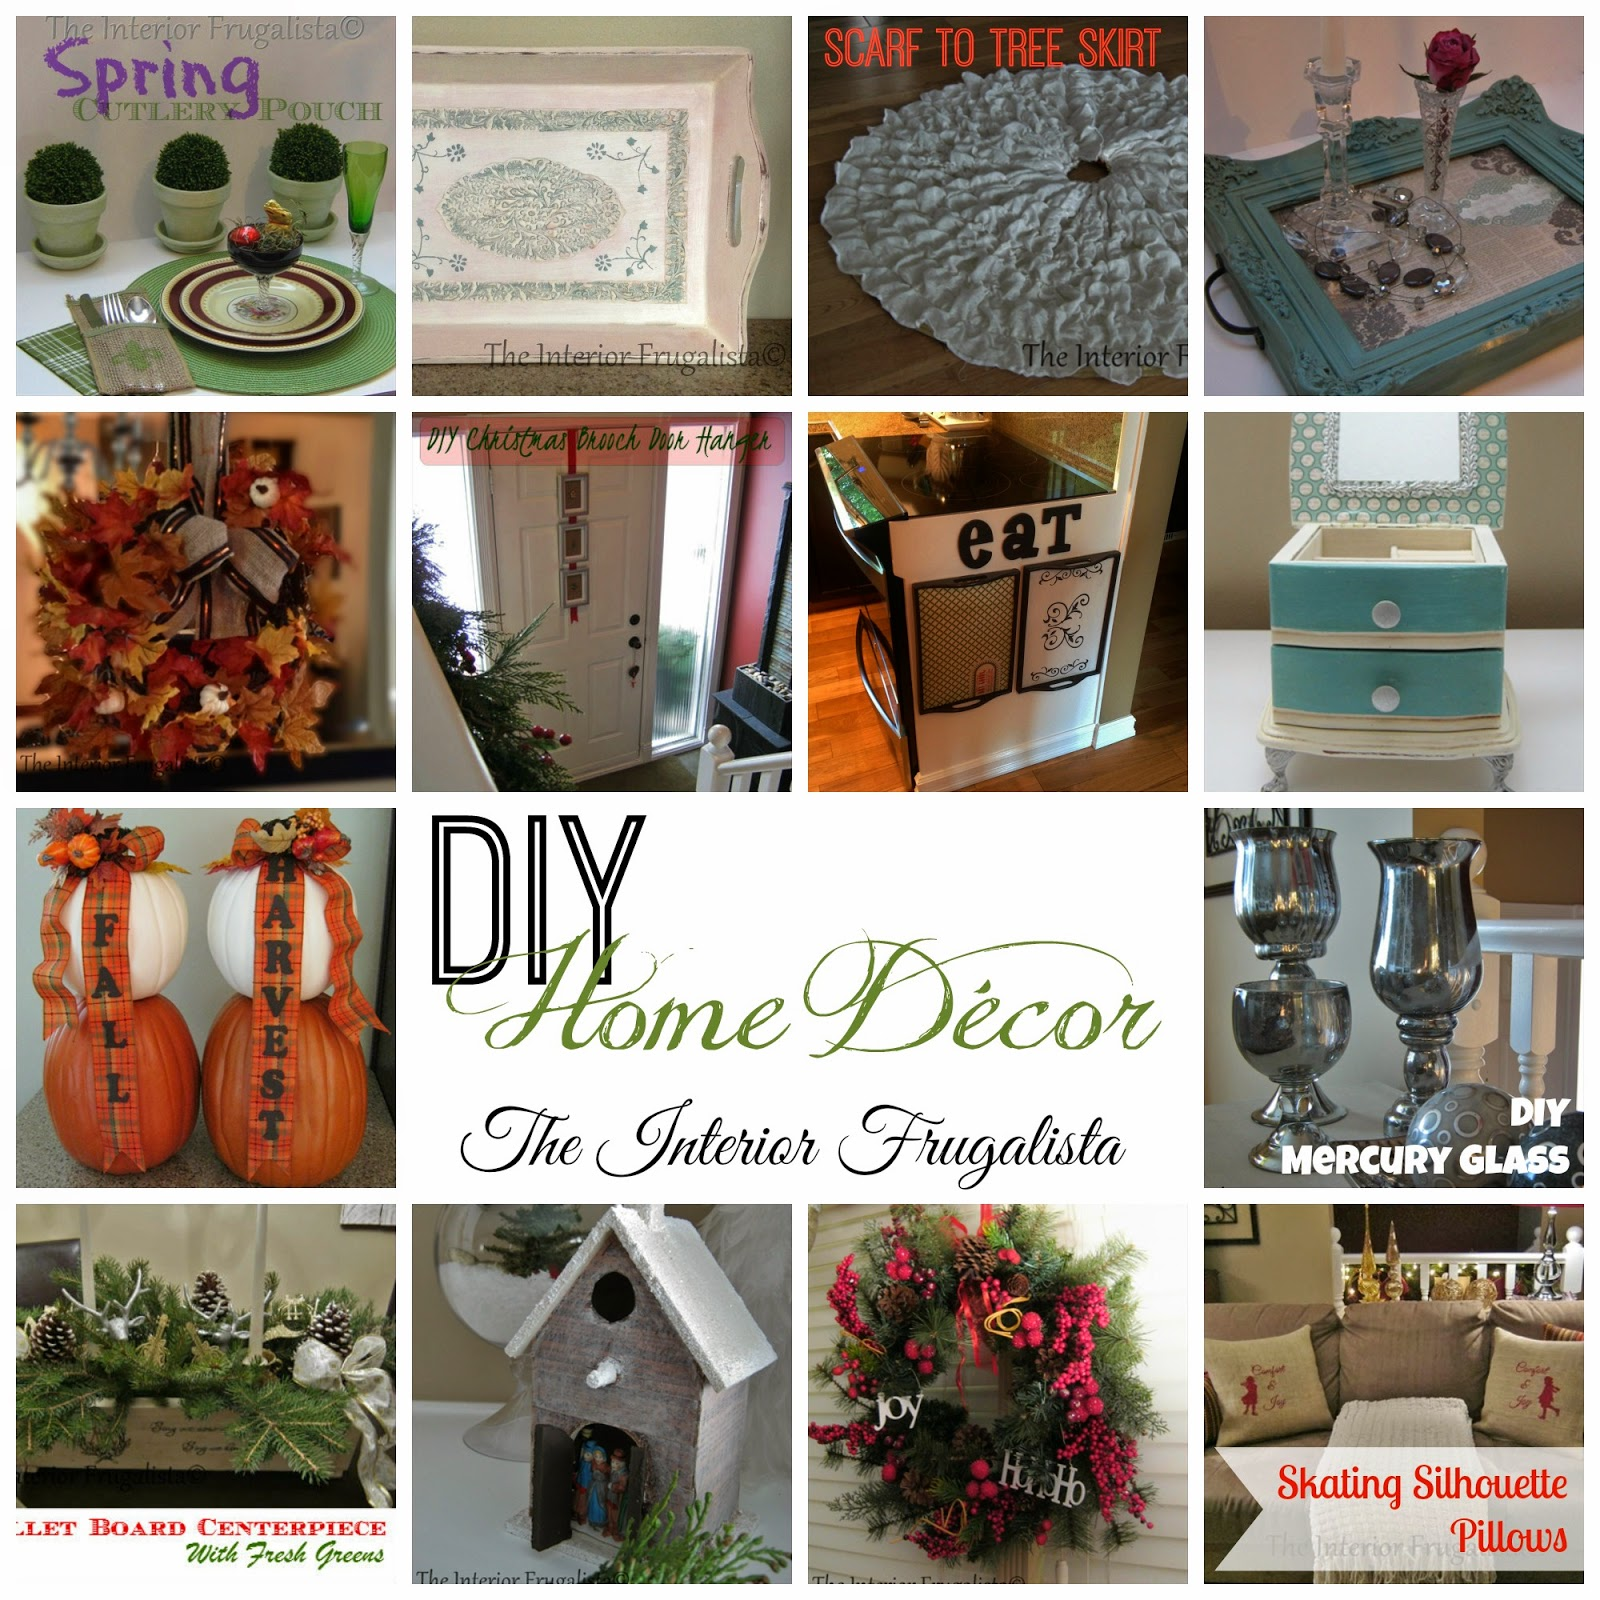 Touring Through Blogland a collage of home decor projects